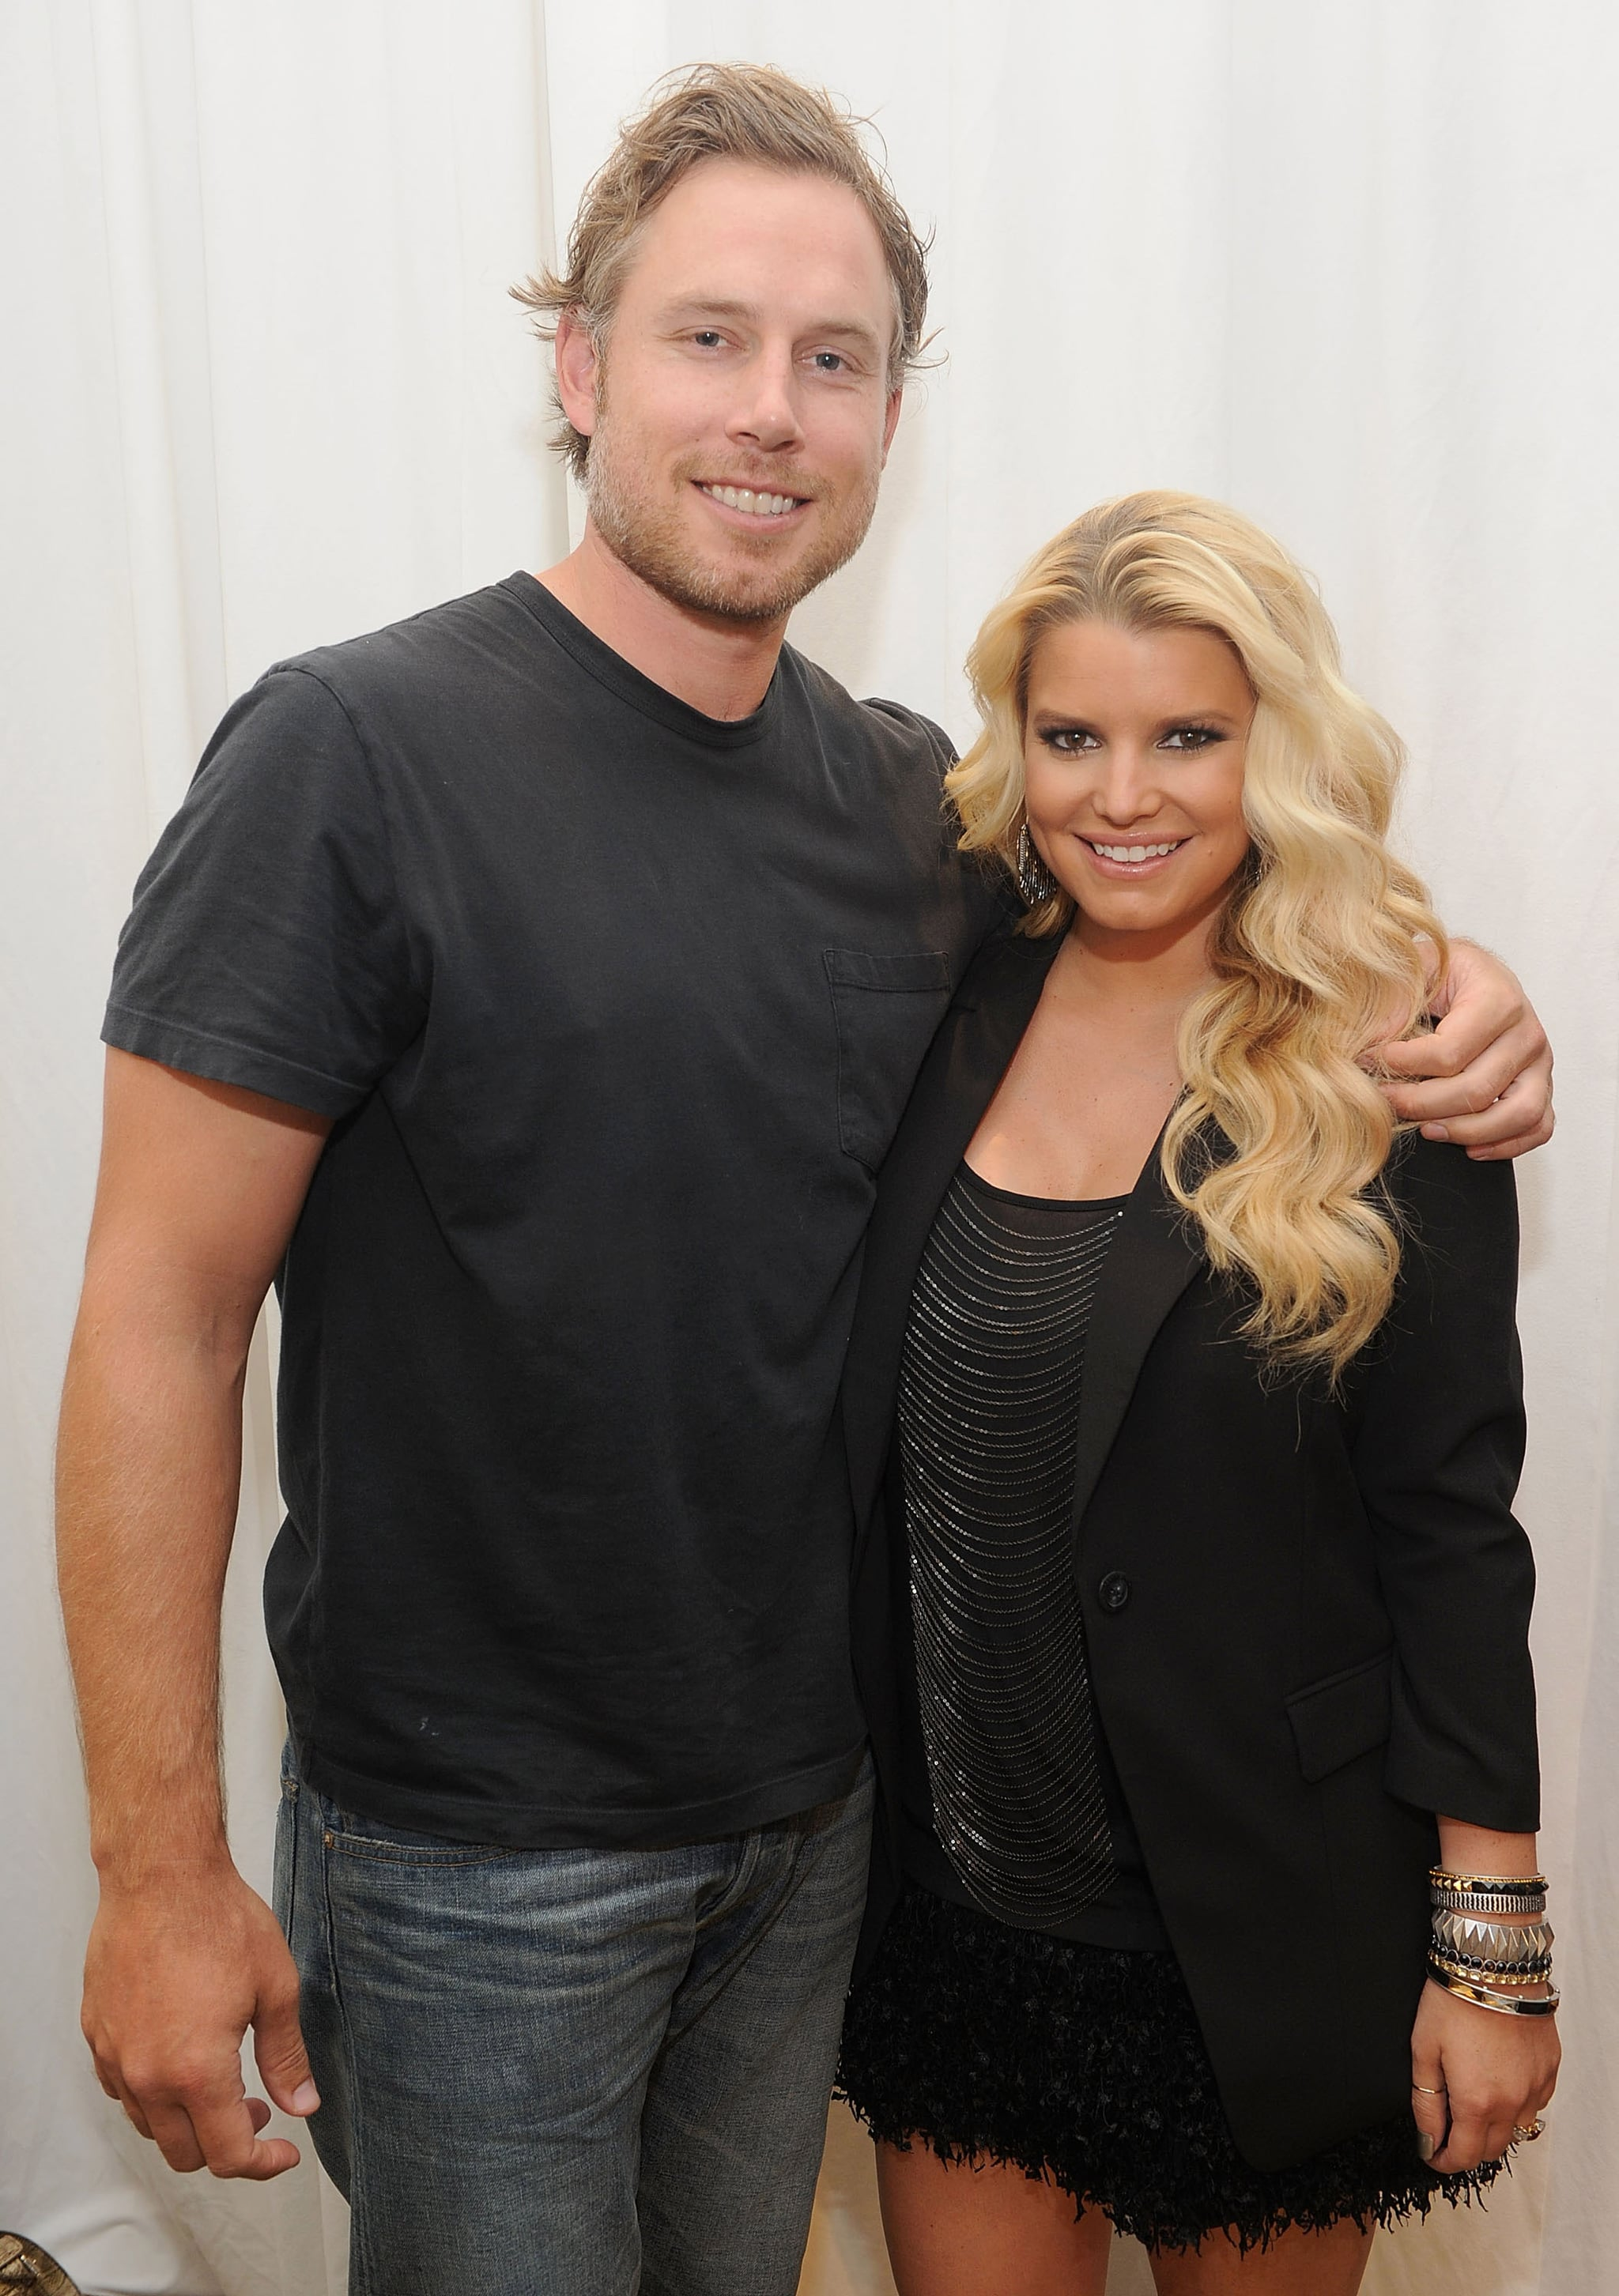 Jessica Simpson And Eric Johnson At Macy S Jessica Simpson Celebrates Her New Ready To Wear Designs In Sf With Eric Johnson Popsugar Celebrity Photo 3